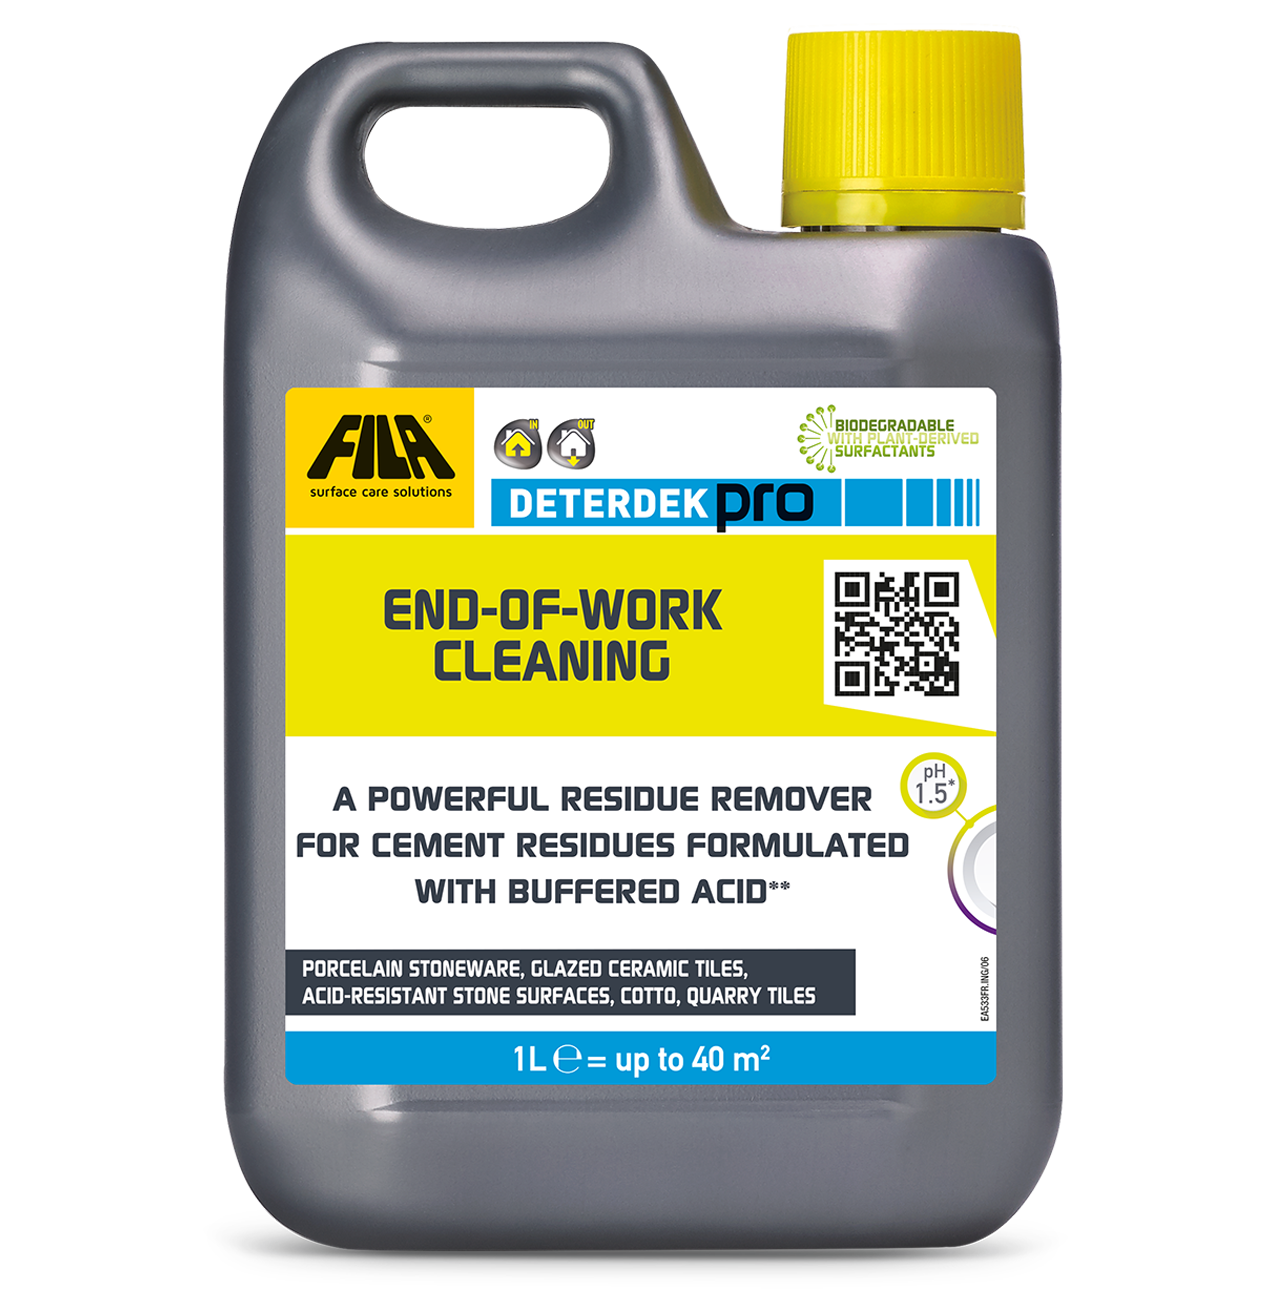 DETERDEK PRO - End-of-work cleaning